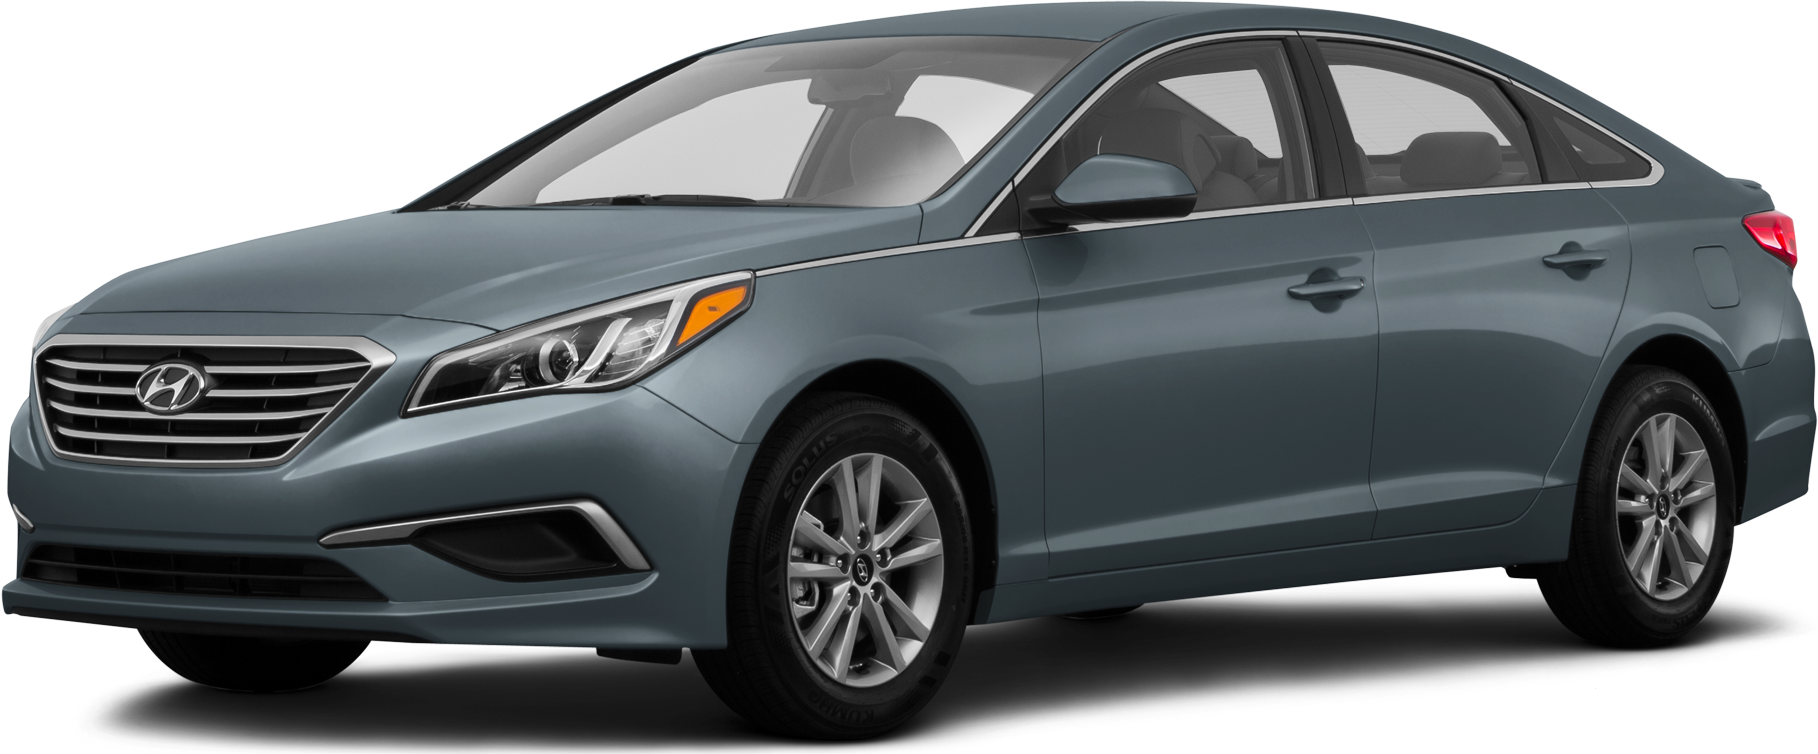 2016 Toyota Camry | Pricing, Ratings, Expert Review | Kelley Blue Book